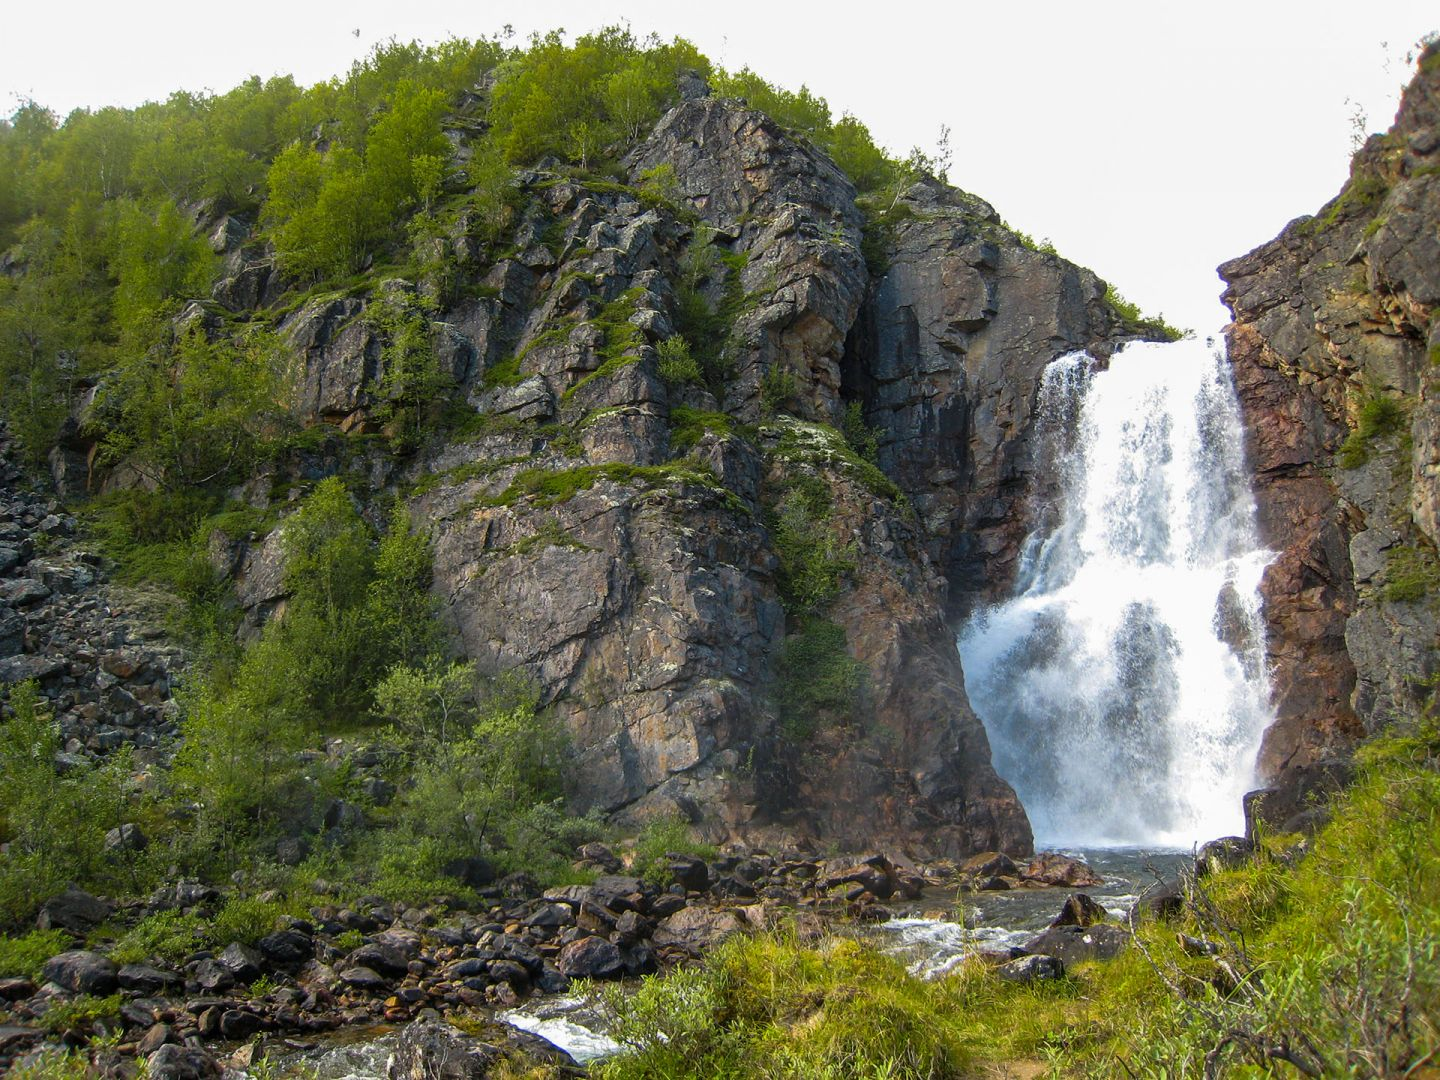 Big arctic waterfall in Kevo Strict Nature Reserve in Utsjoki, Finland